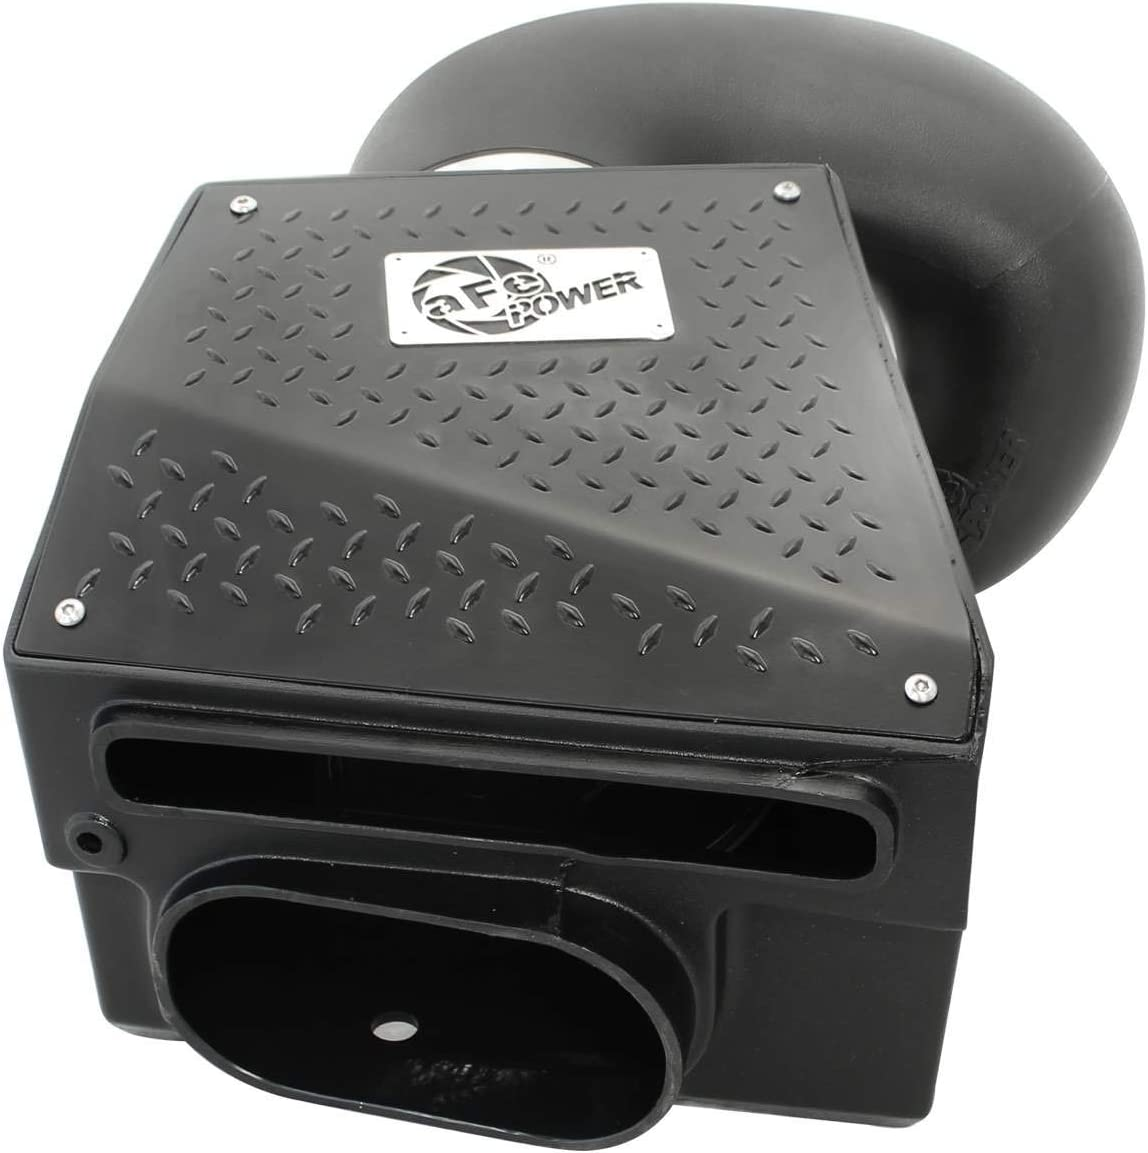 aFe Power Advance Flow Engineering 51-80072-E Air Intake